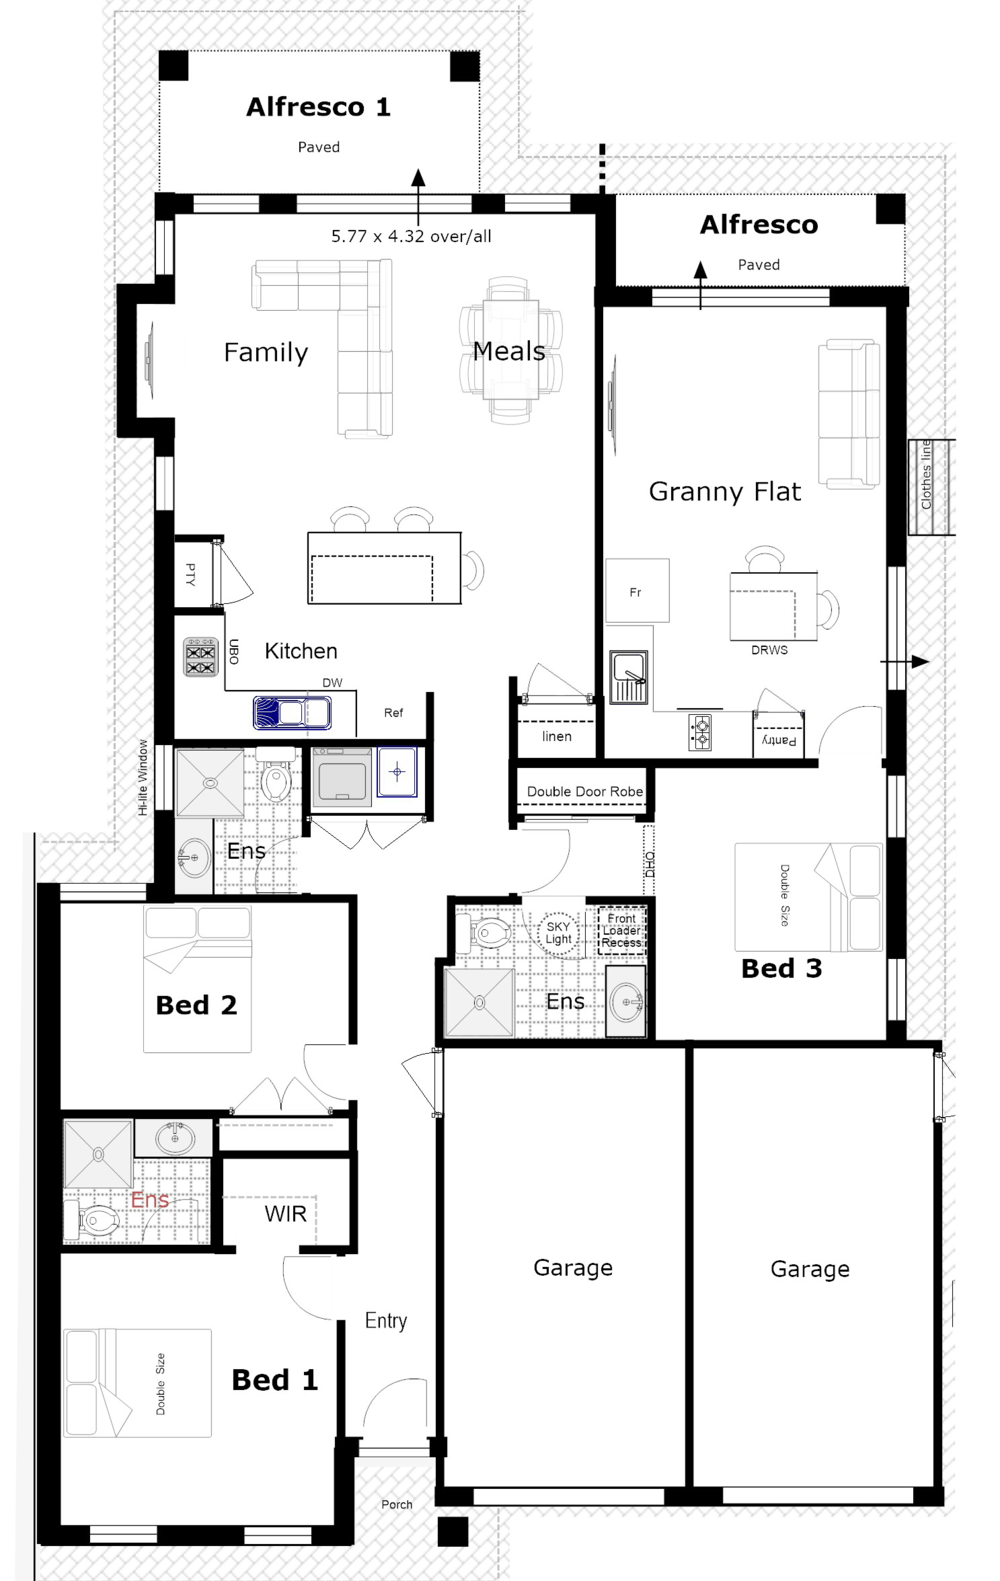 Designs for Multigenerational house plans with two kitchens